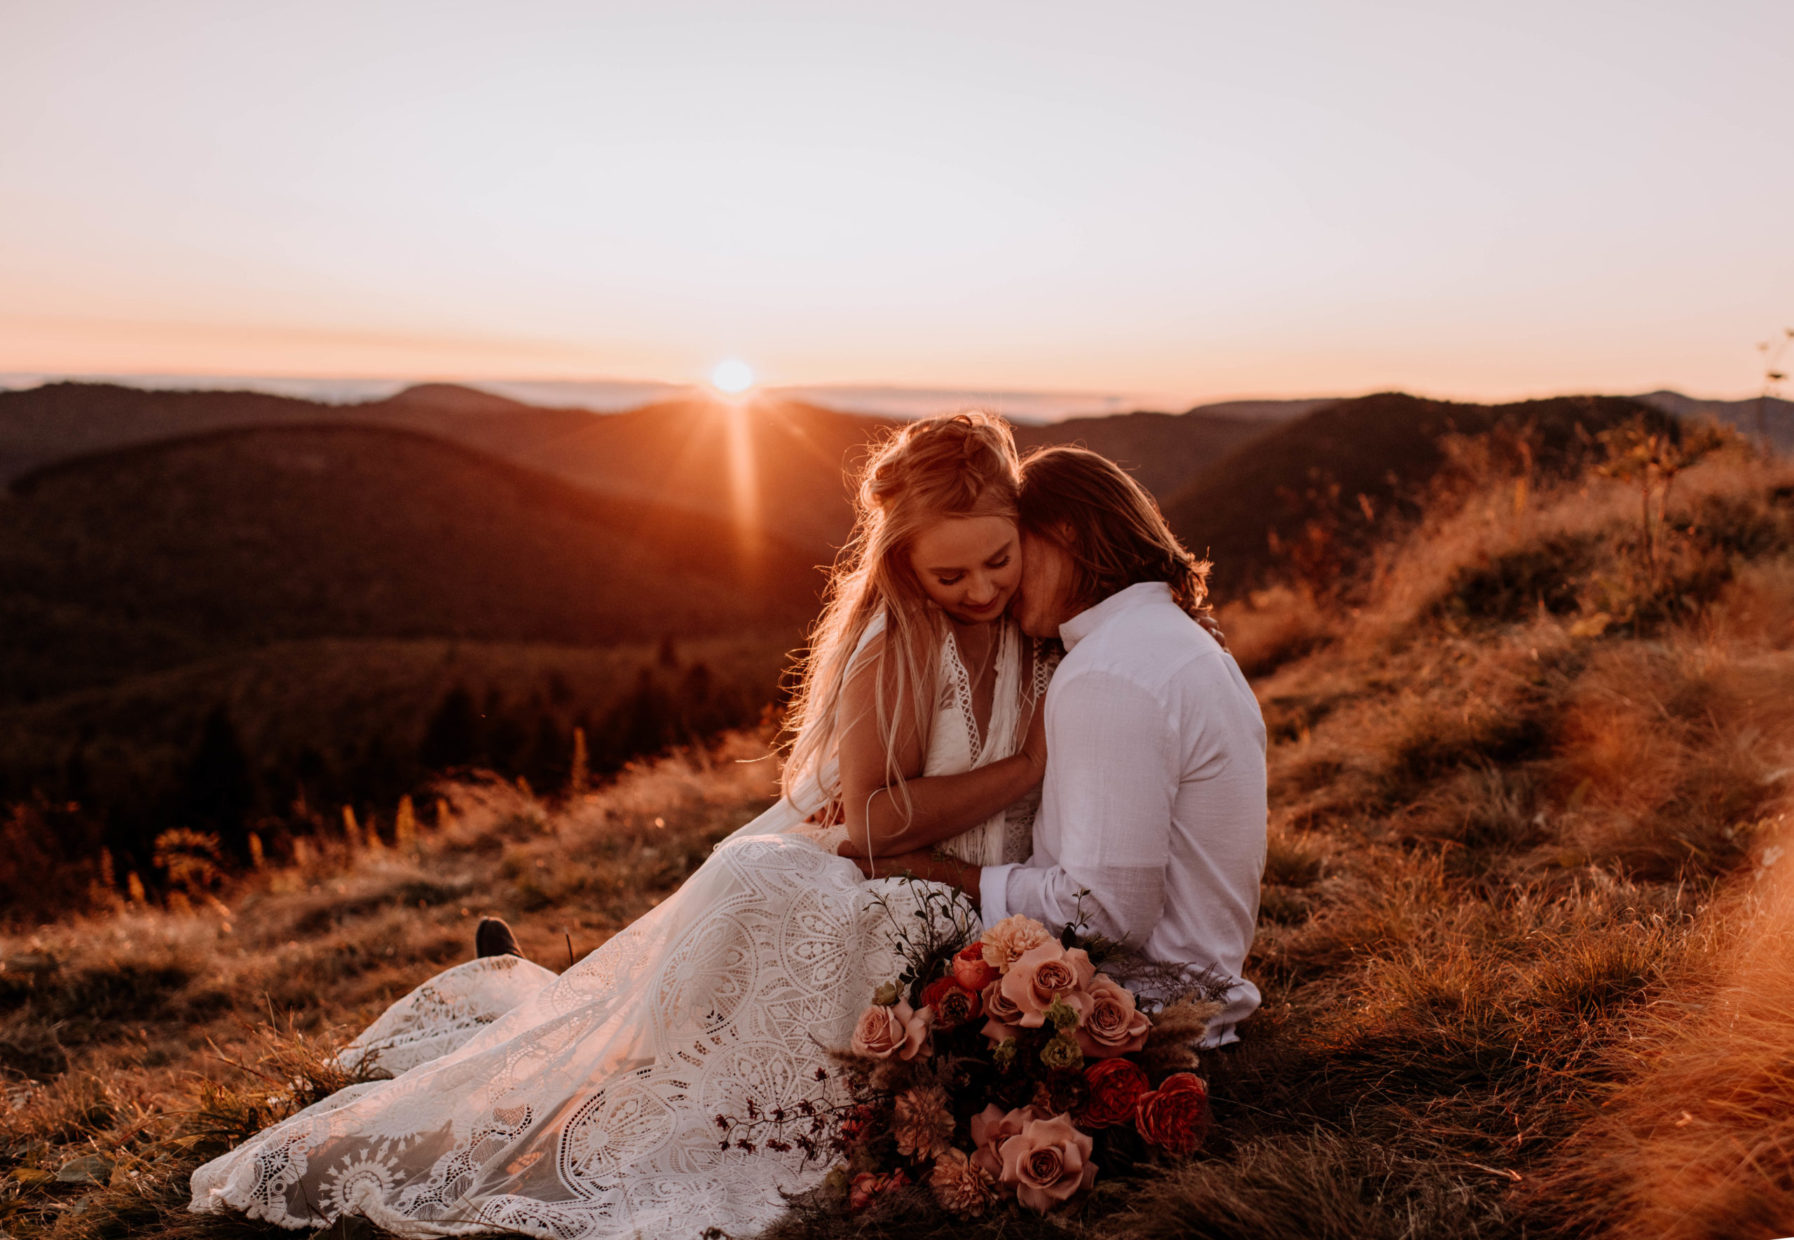 bride and groom sitting next to bouquet of flowers